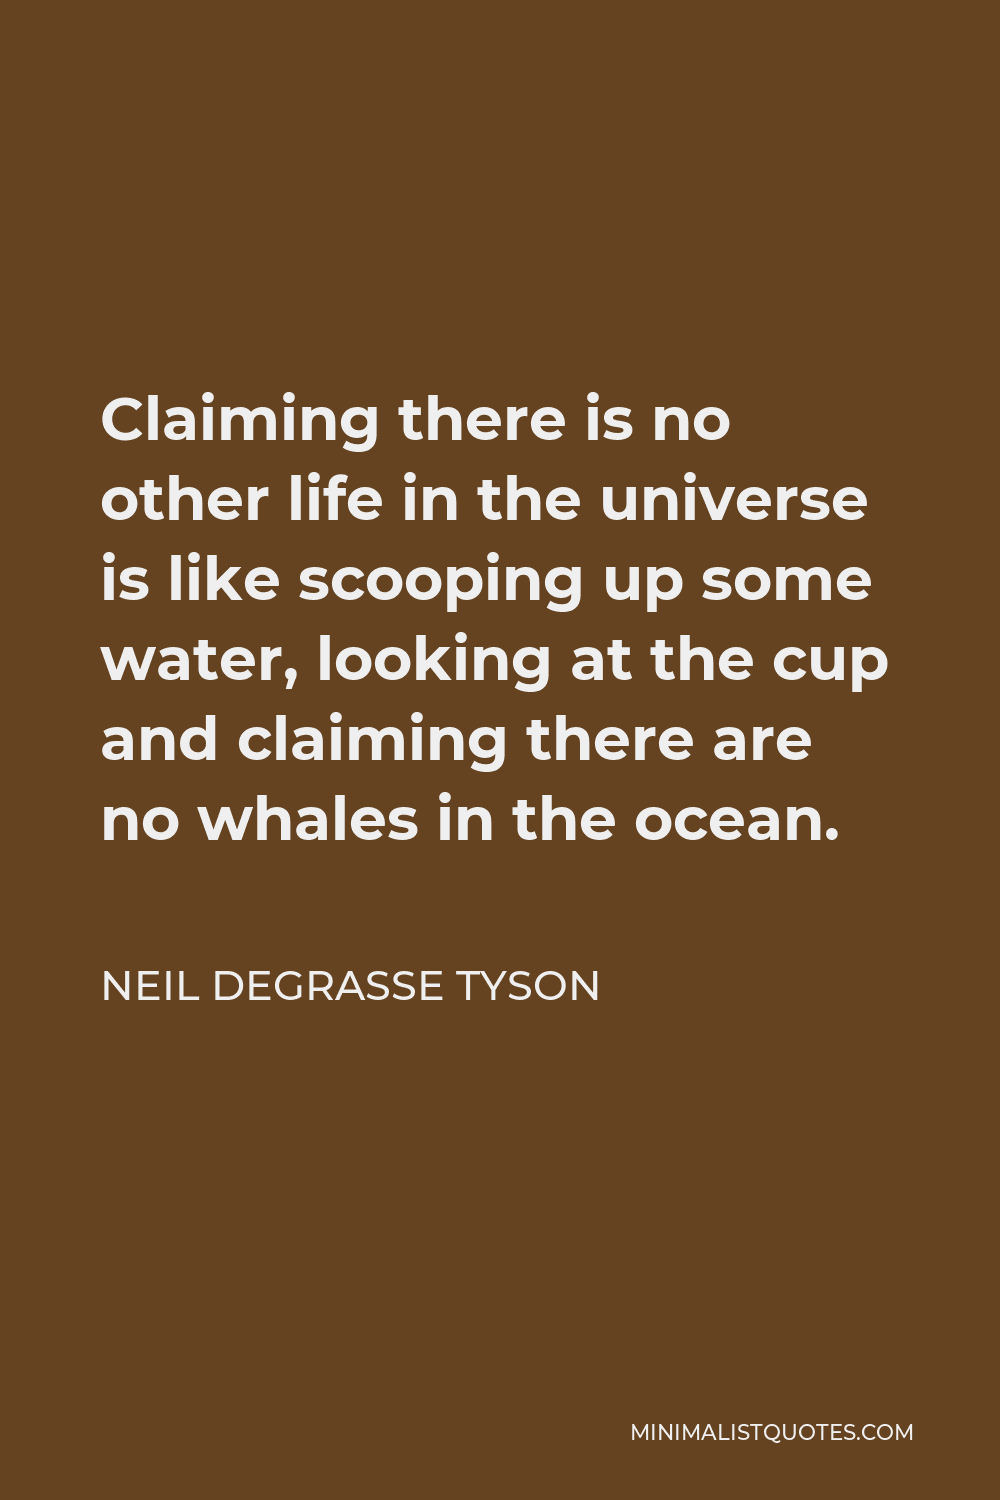 Neil deGrasse Tyson Quote - Claiming there is no other life in the universe is like scooping up some water, looking at the cup and claiming there are no whales in the ocean.